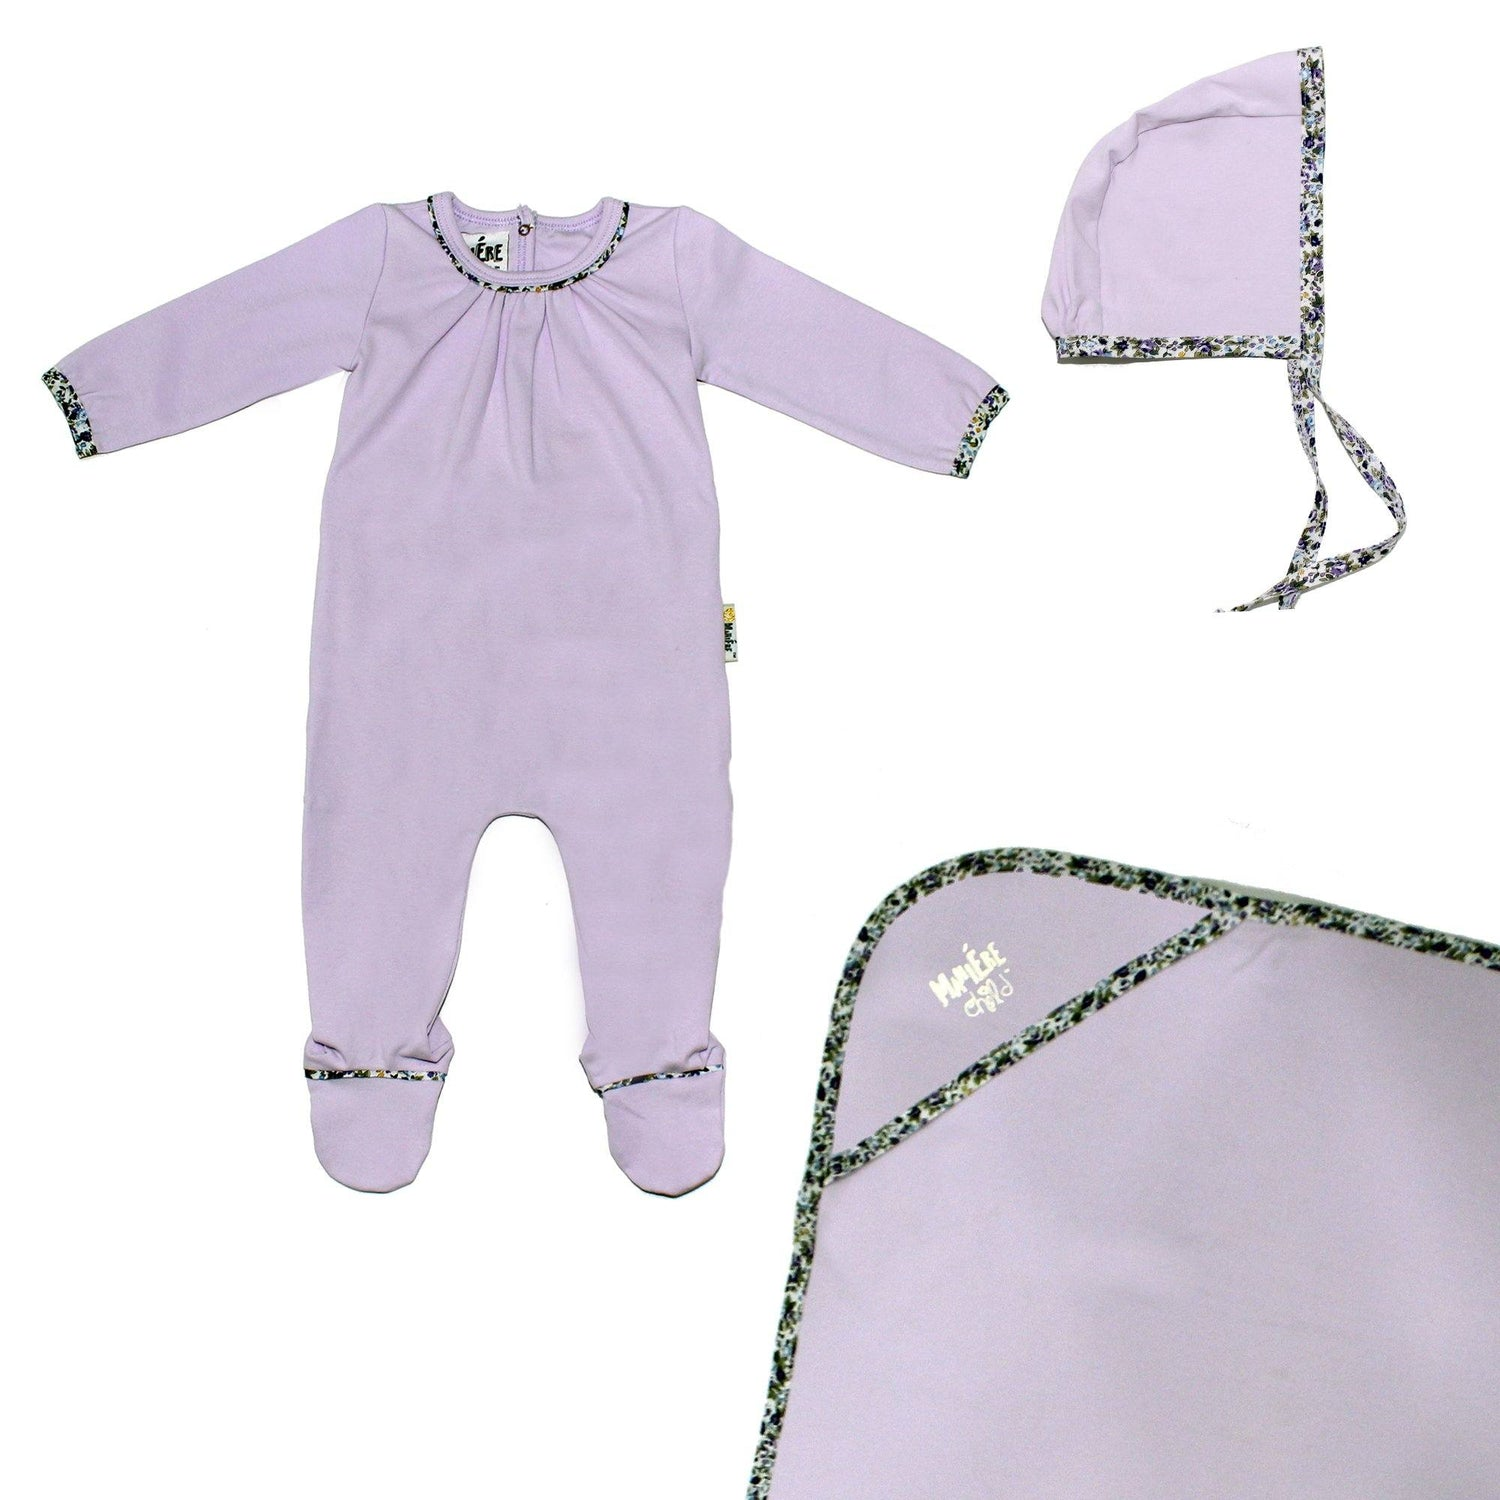 Floral Trim Footie Set Baby Sets Maniere Accessories Lavender 3 Month